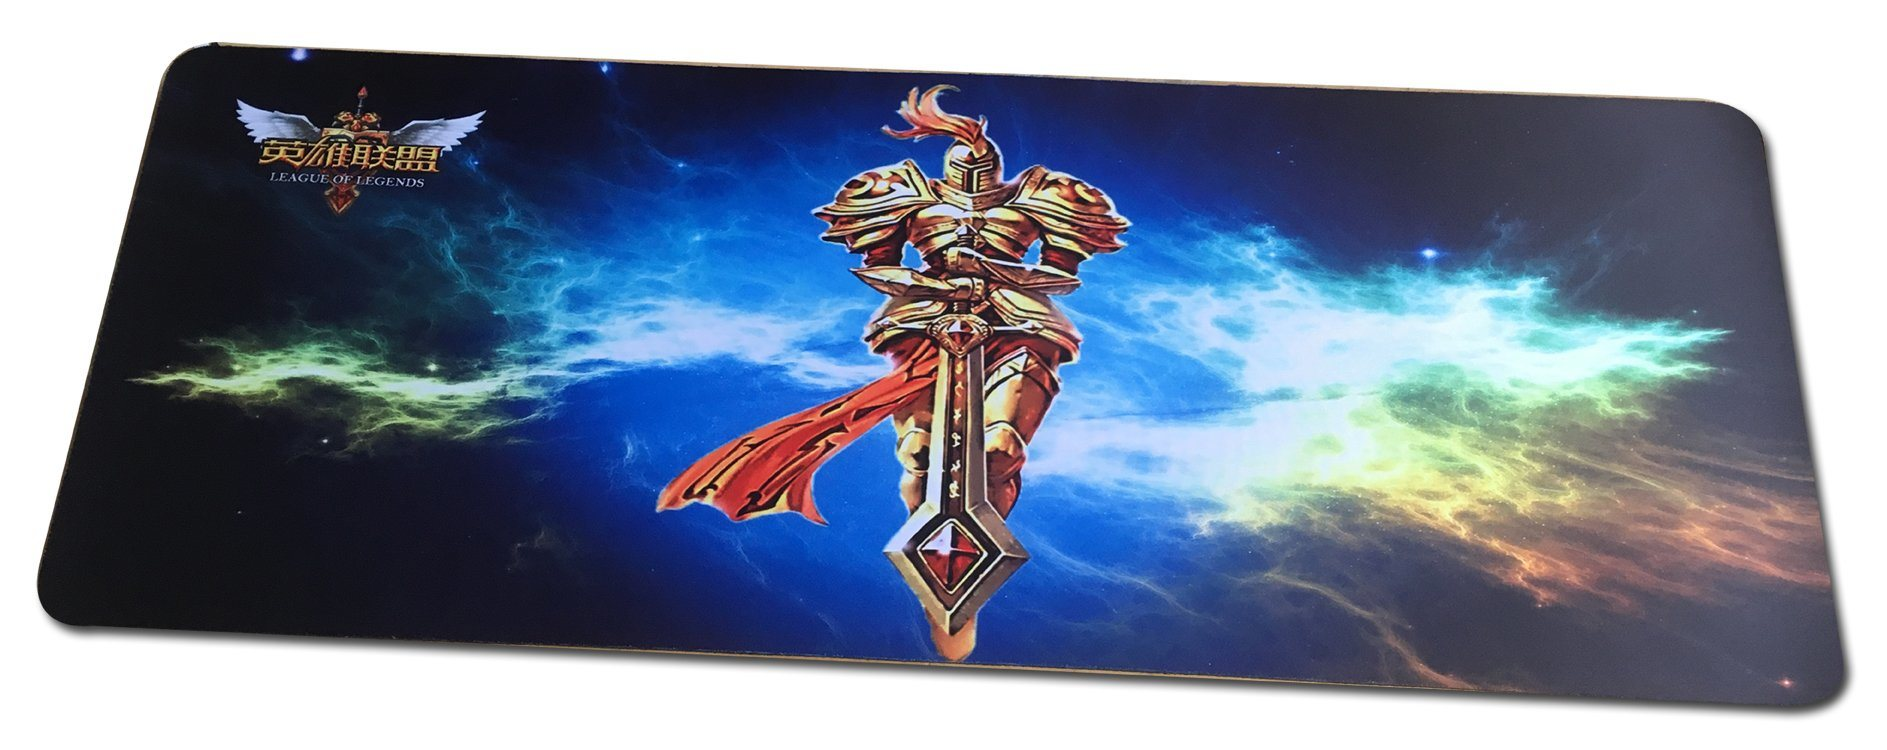 Stitched Edges Rubber Gaming Mouse Pad With Printing Customer Logo